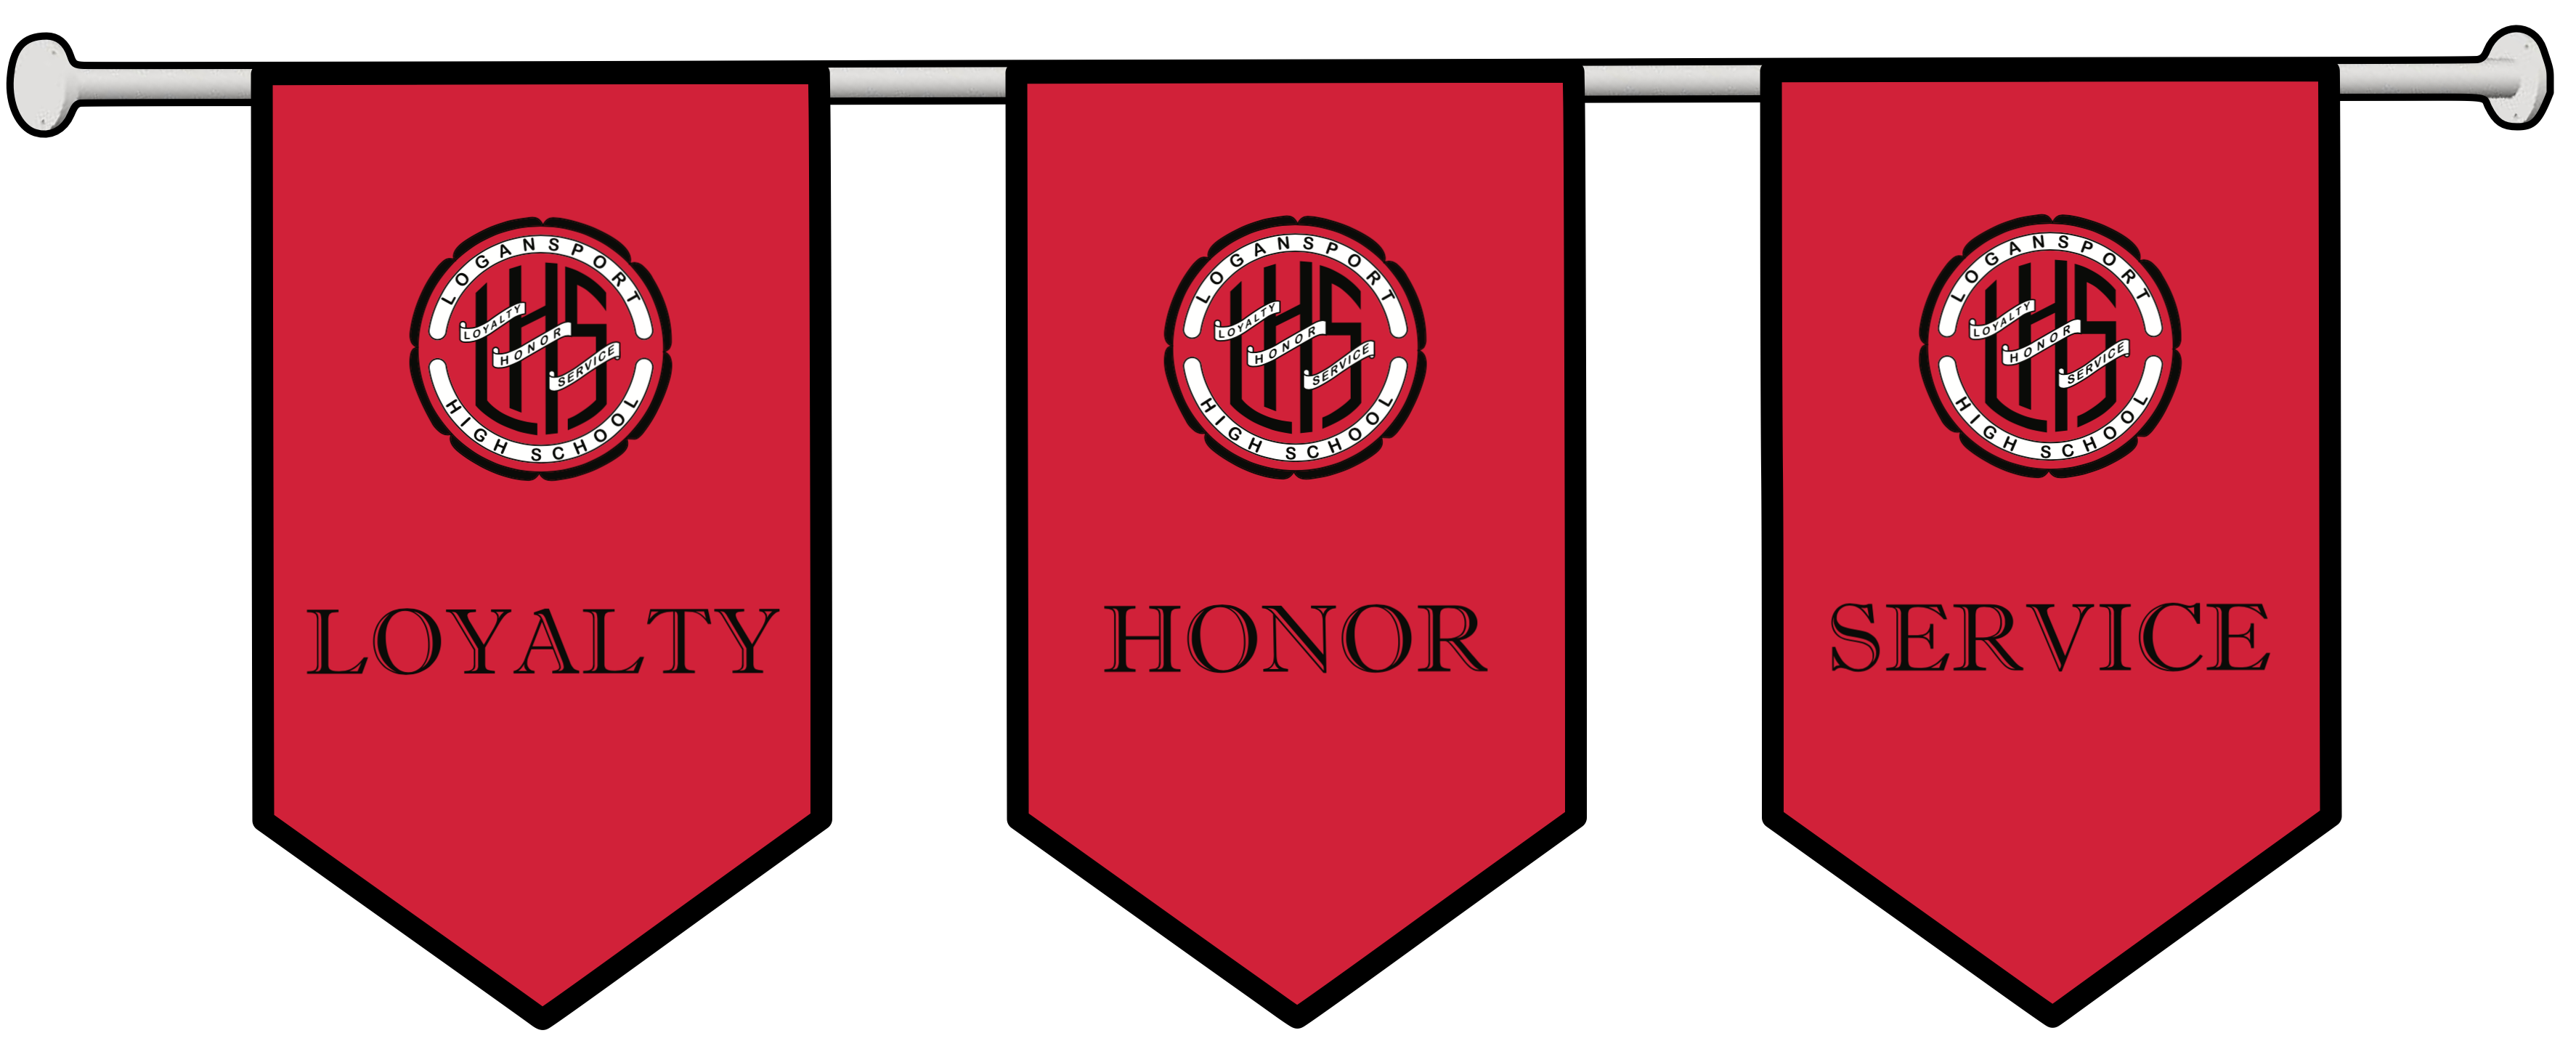 LHS Values: Loyalty, Honor and Service